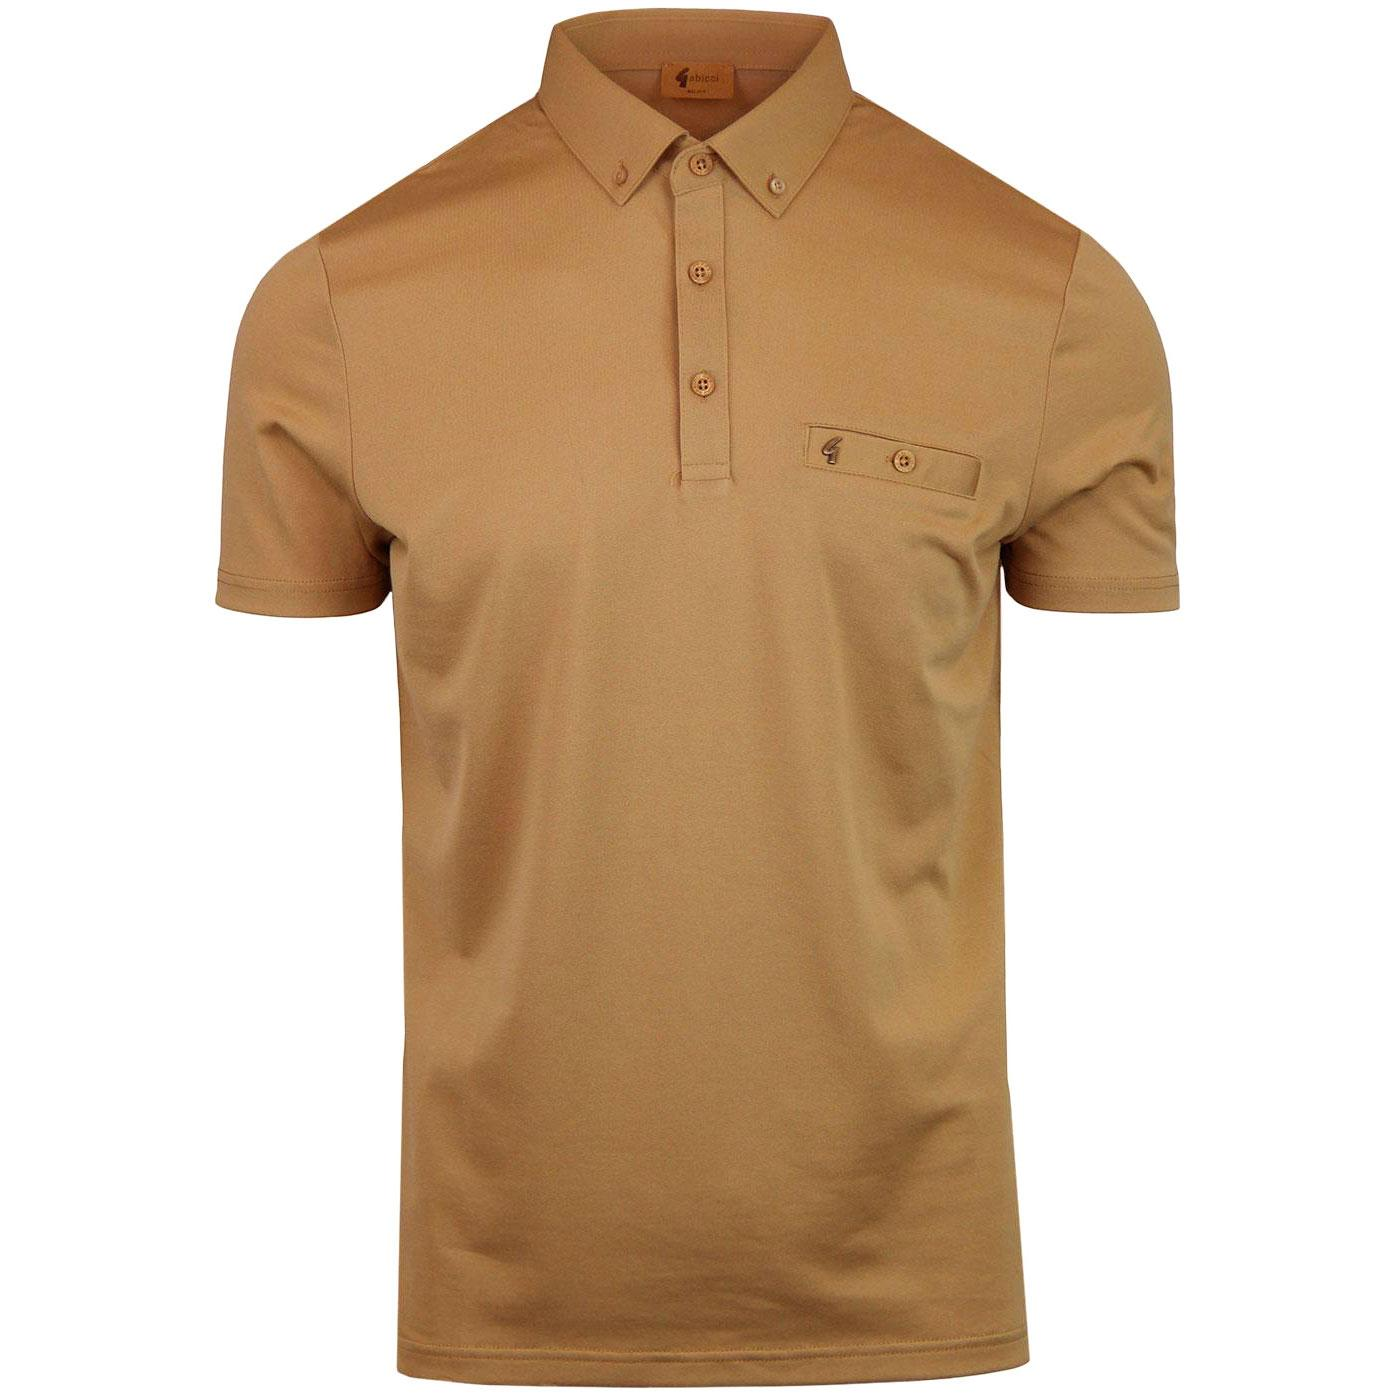 Ladro GABICCI VINTAGE Mod Polo Shirt BUTTERSCOTCH